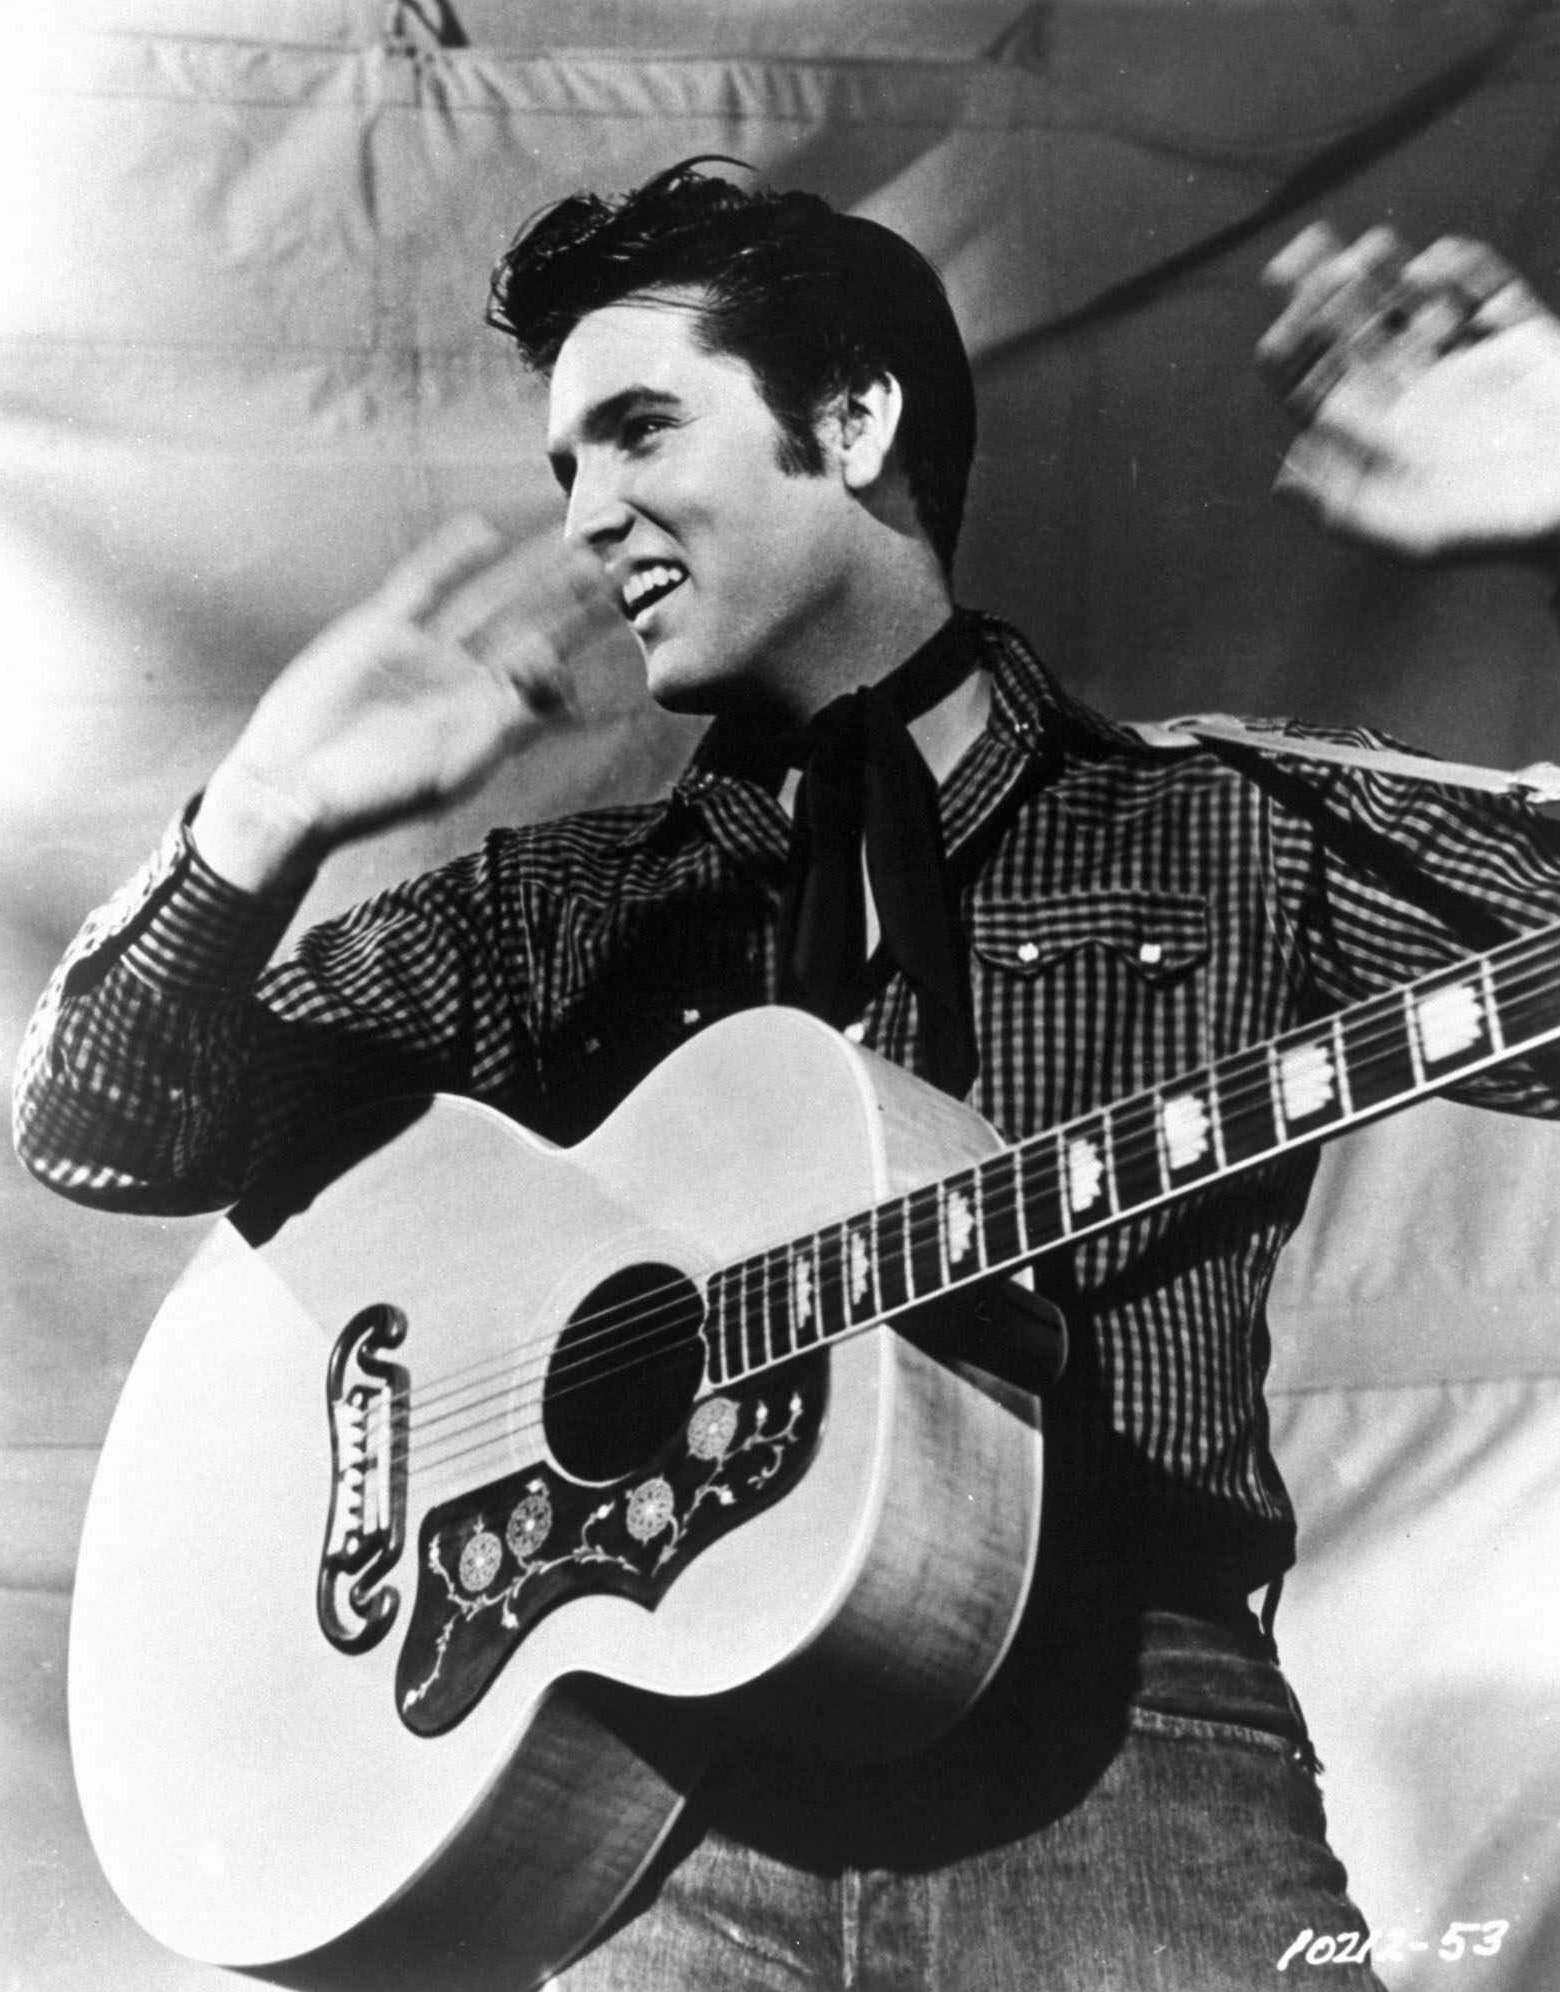 "FILE--Elvis Presley is shown with his Gibson J-200 guitar in this 1957 MGM handout file photo. Presley fans in Japan will soon get to hear a collection of standards picked by the nation's wildly popular prime minister, Junichiro Koizumi. ""Junichiro Koizumi Presents: My Favorite Elvis Songs'' will hit Japanese record shops Wednesday, Aug. 22, 2001, said Katsumi Miyata, a spokesman for BMG Funhouse Inc., a subsidiary for international music company BMG."